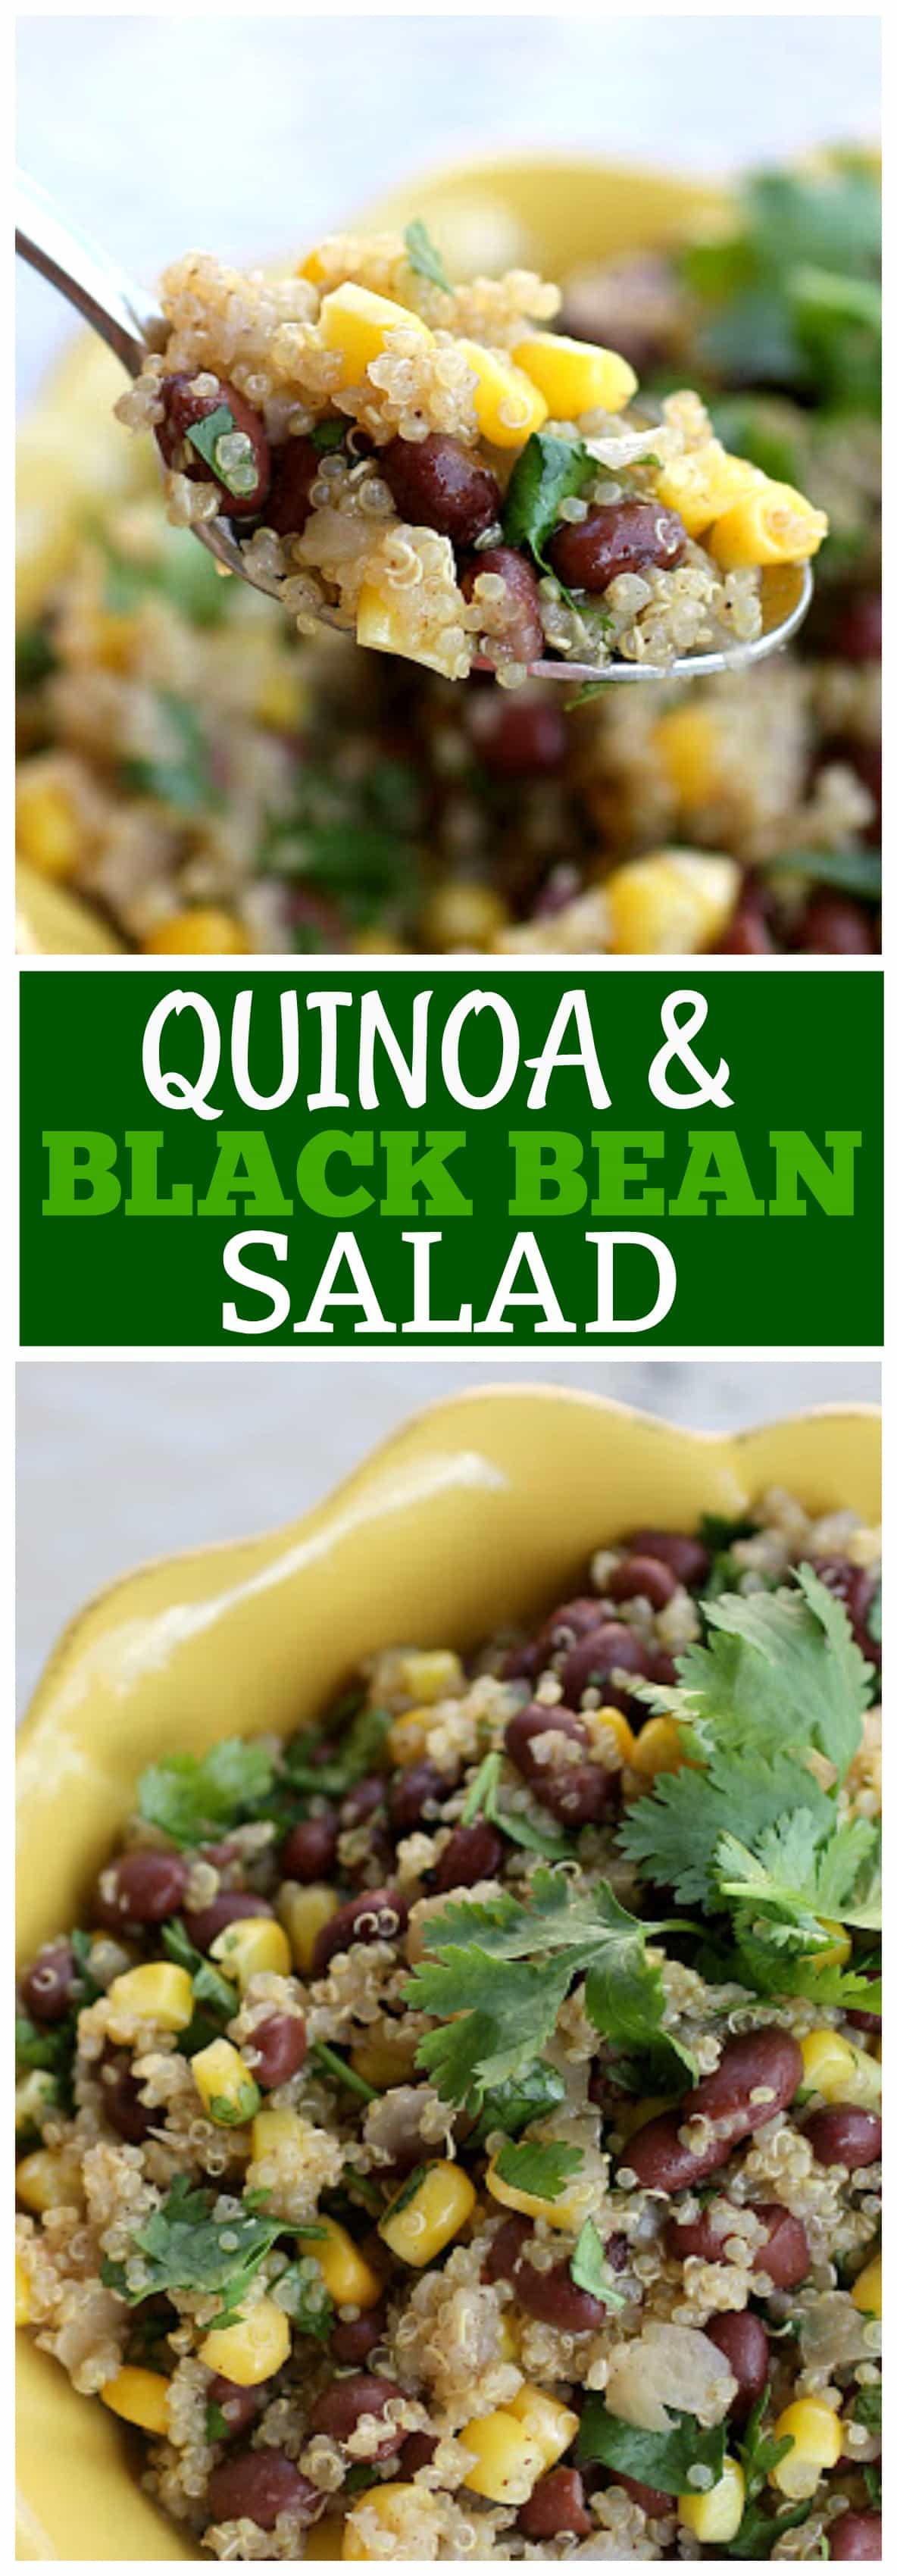 This Quinoa and Black Bean Salad is a vegan Mexican side dish packed with corn and black beans.